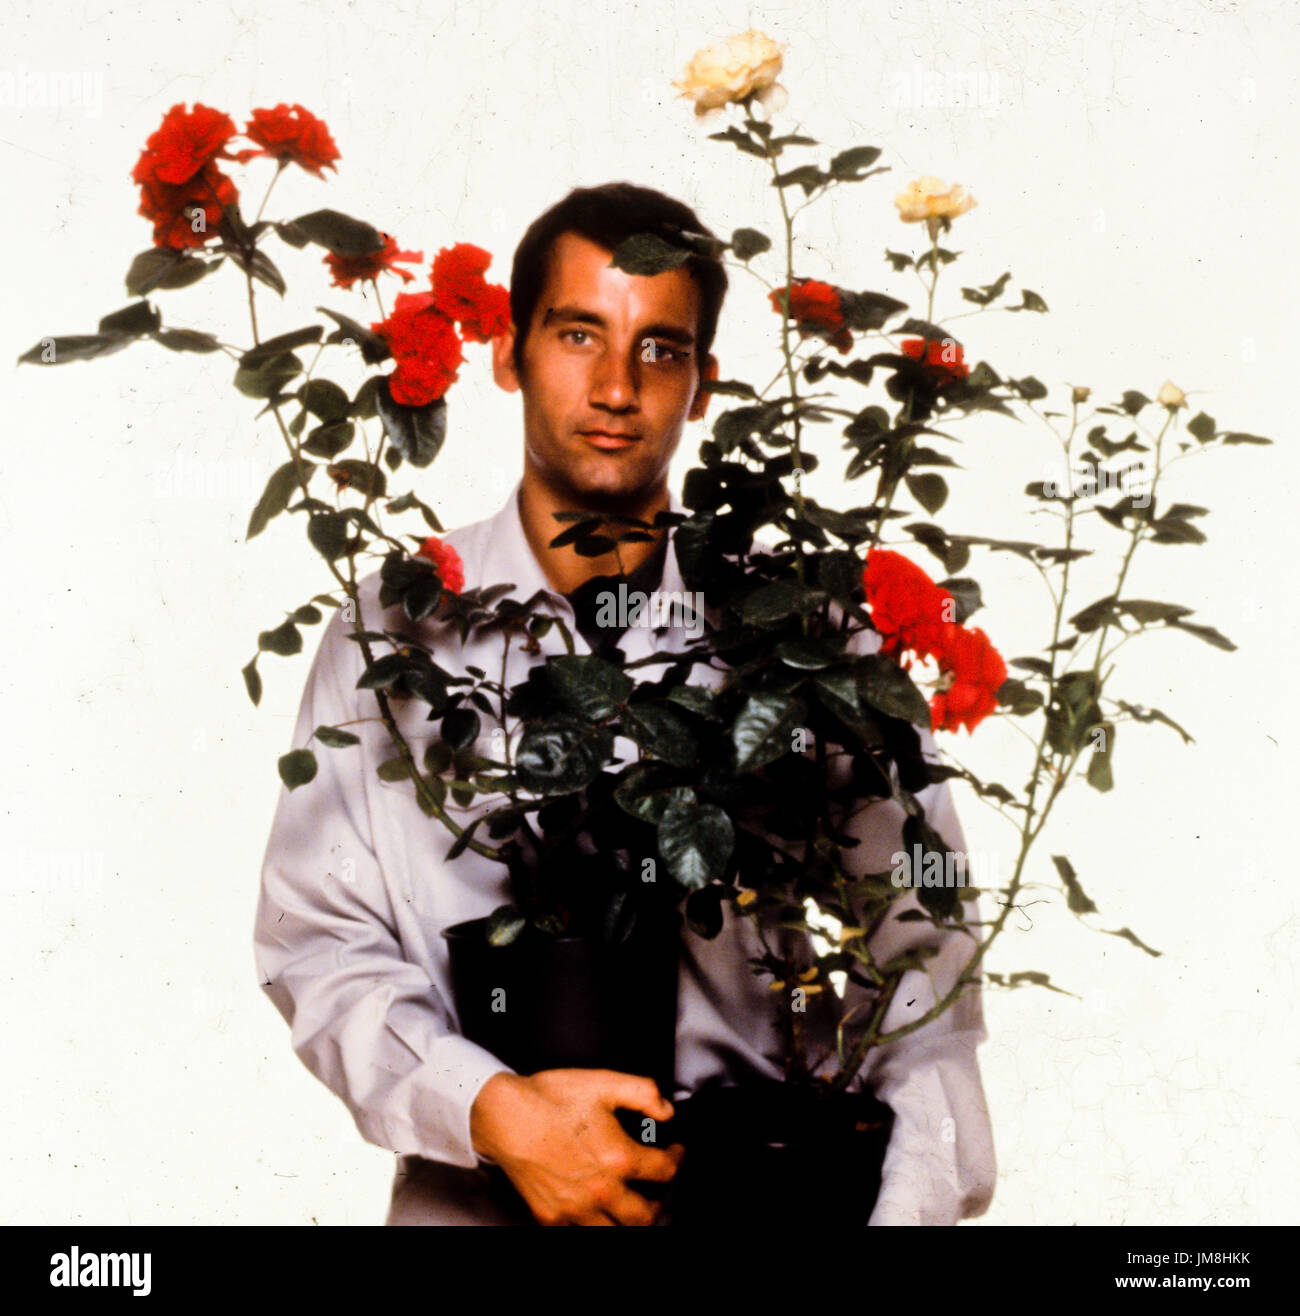 clive owen, greenfingers, 2001 - Stock Image